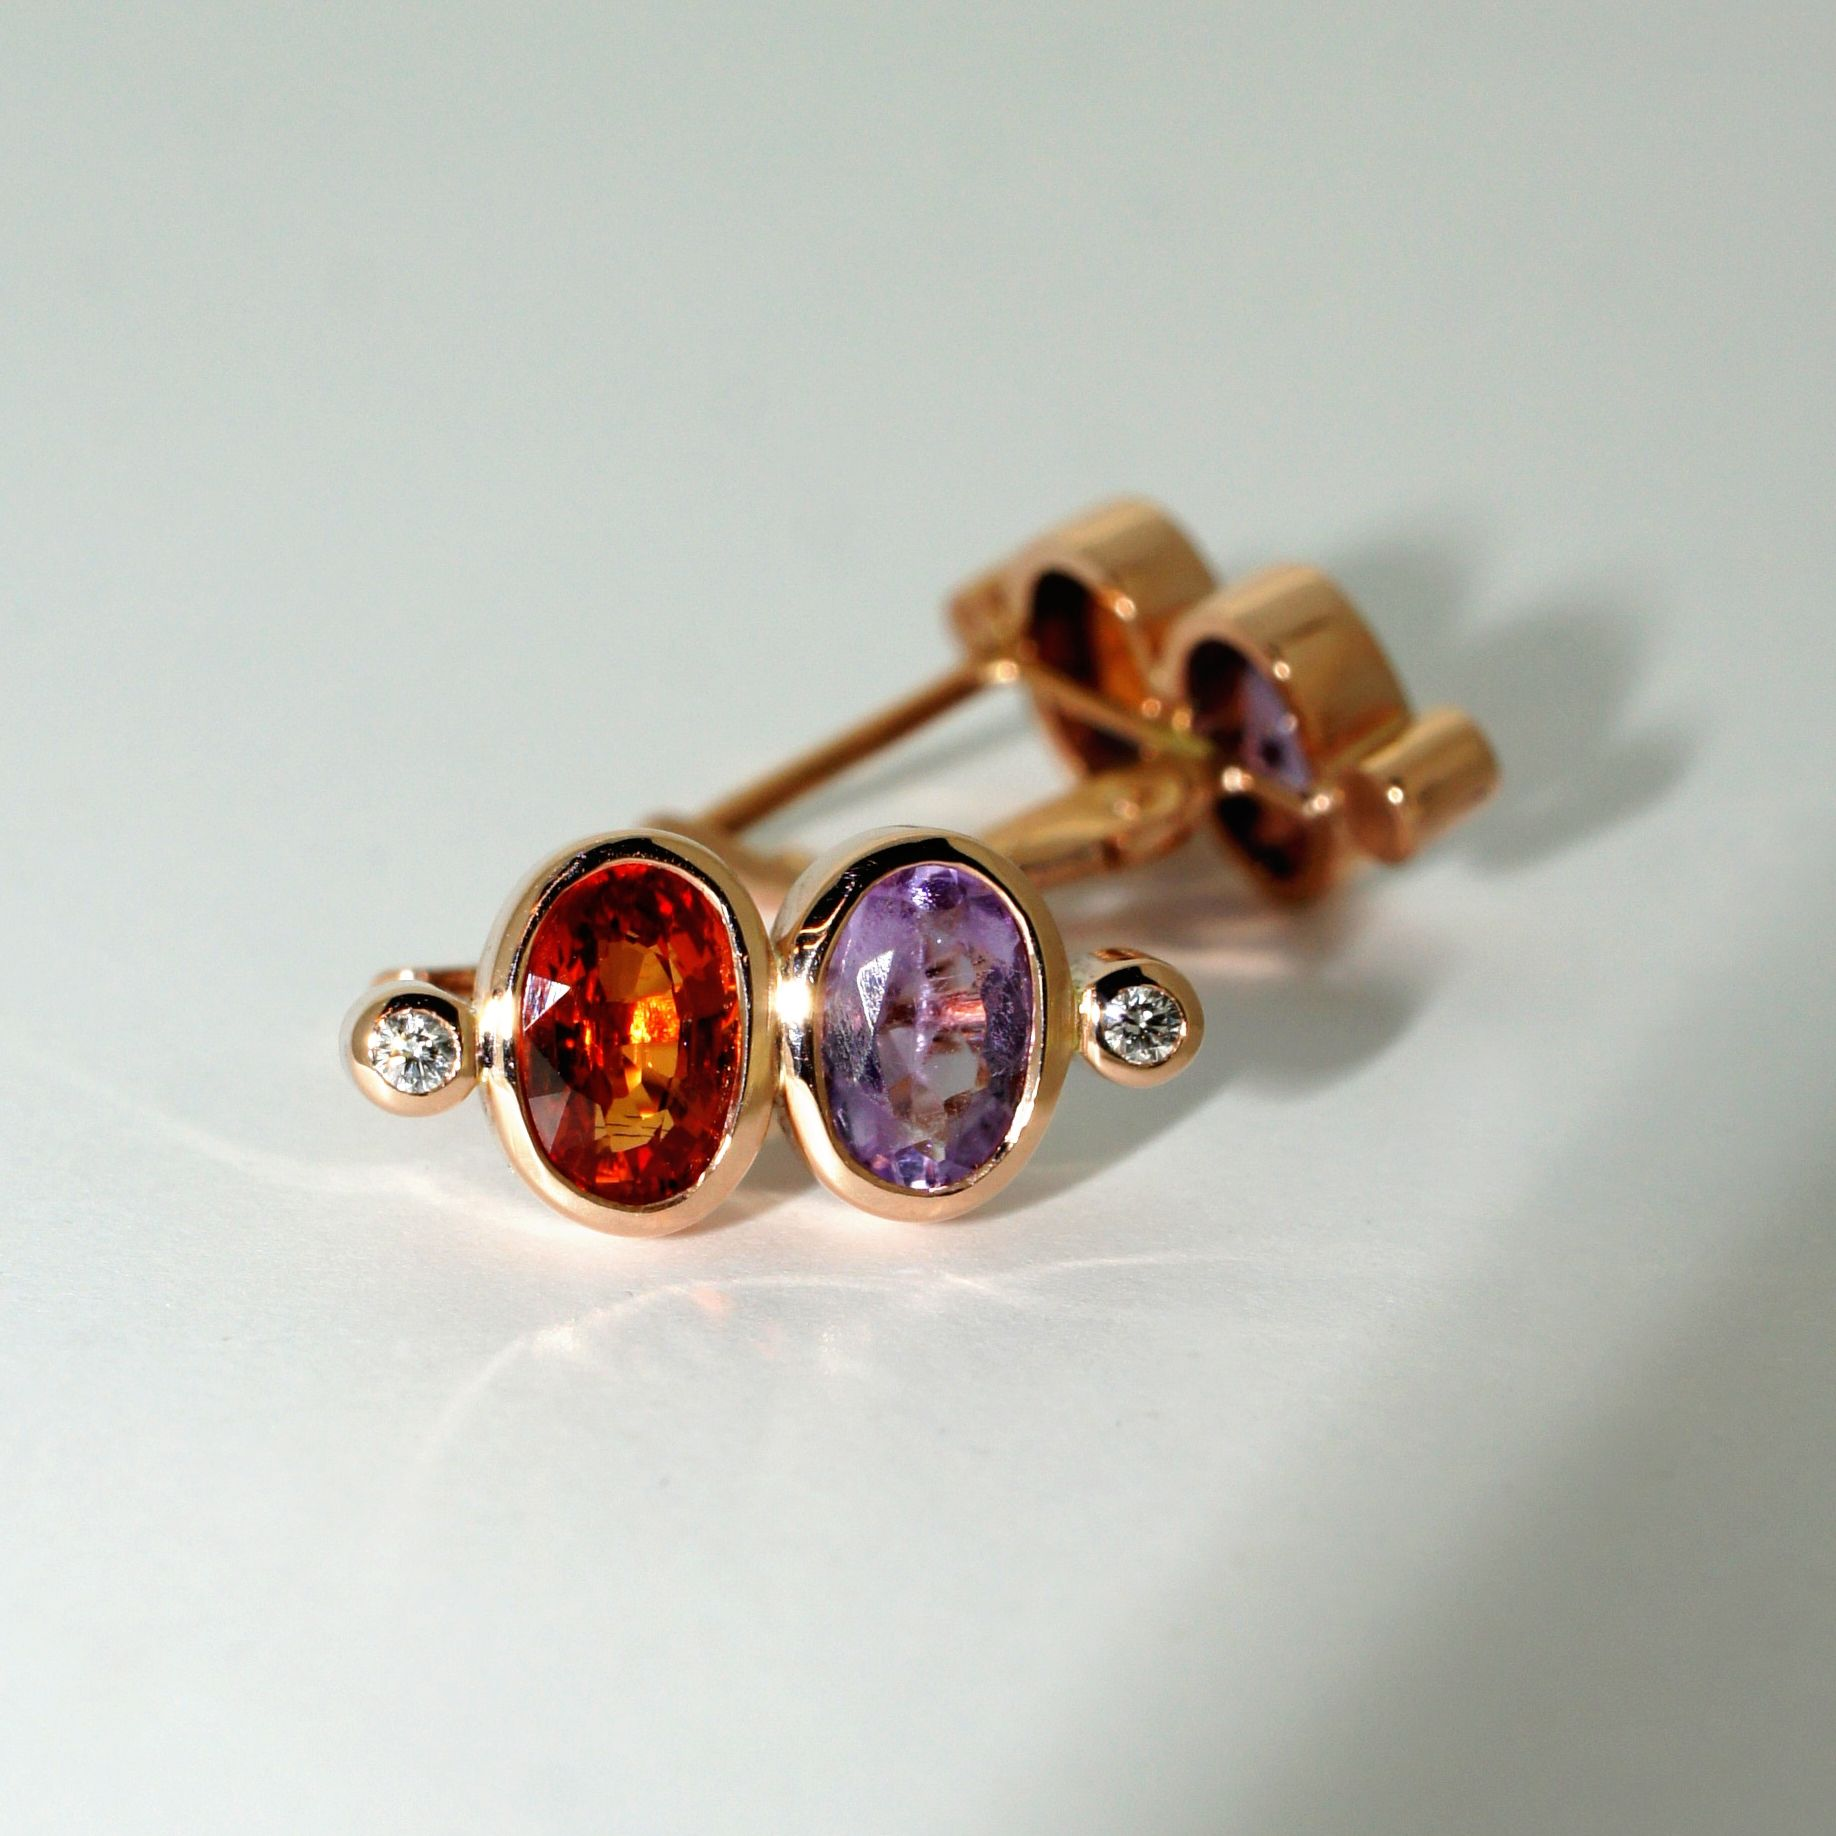 A look back at these contemporary earrings handcrafted in rose gold and set with orange sapphires, amethysts and diamonds.          #gemstoneearrings #rosegoldearrings #amethyst #orangesapphire #contemporaryearrings #customjewellery #bespokejewellery #earrings #handmadejewellery #contemporaryjewellery #jewellery #sydneyjeweller #sydneyjewellerydesigner #australianjeweller #jewelry